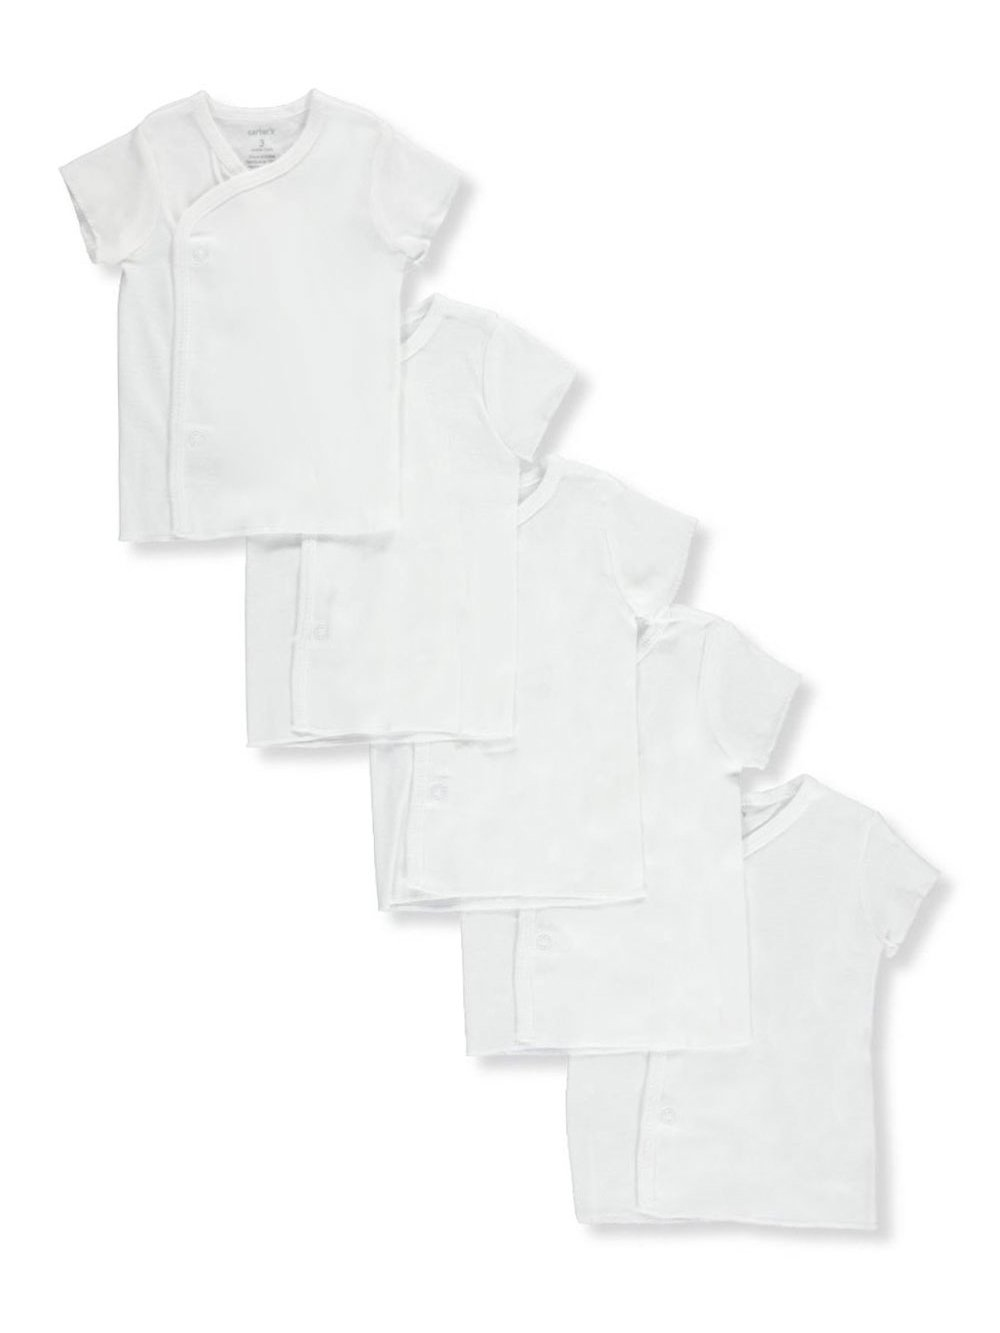 Carter's Unisex Baby 5-Pack Shirts Carter's